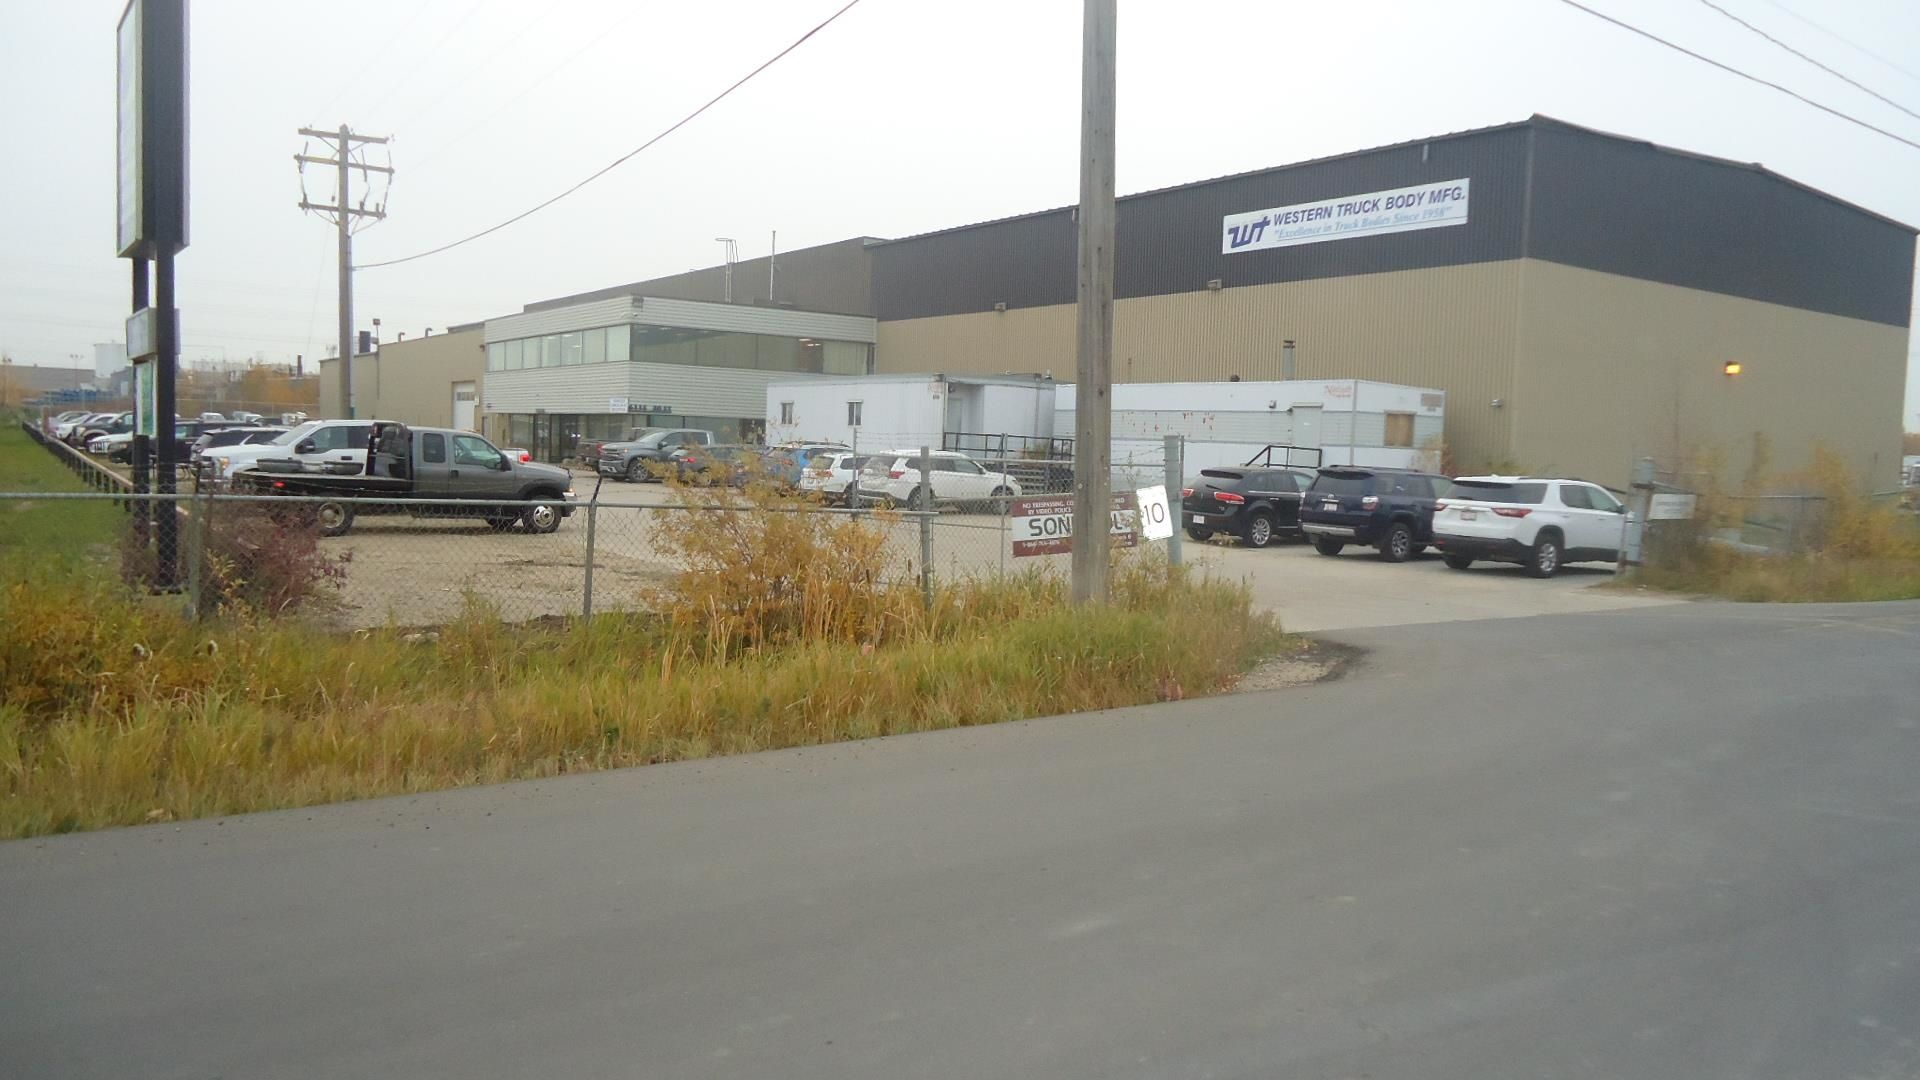 Main Photo: 6115 30 Street NW in Edmonton: Zone 42 Industrial for sale : MLS®# E4266347